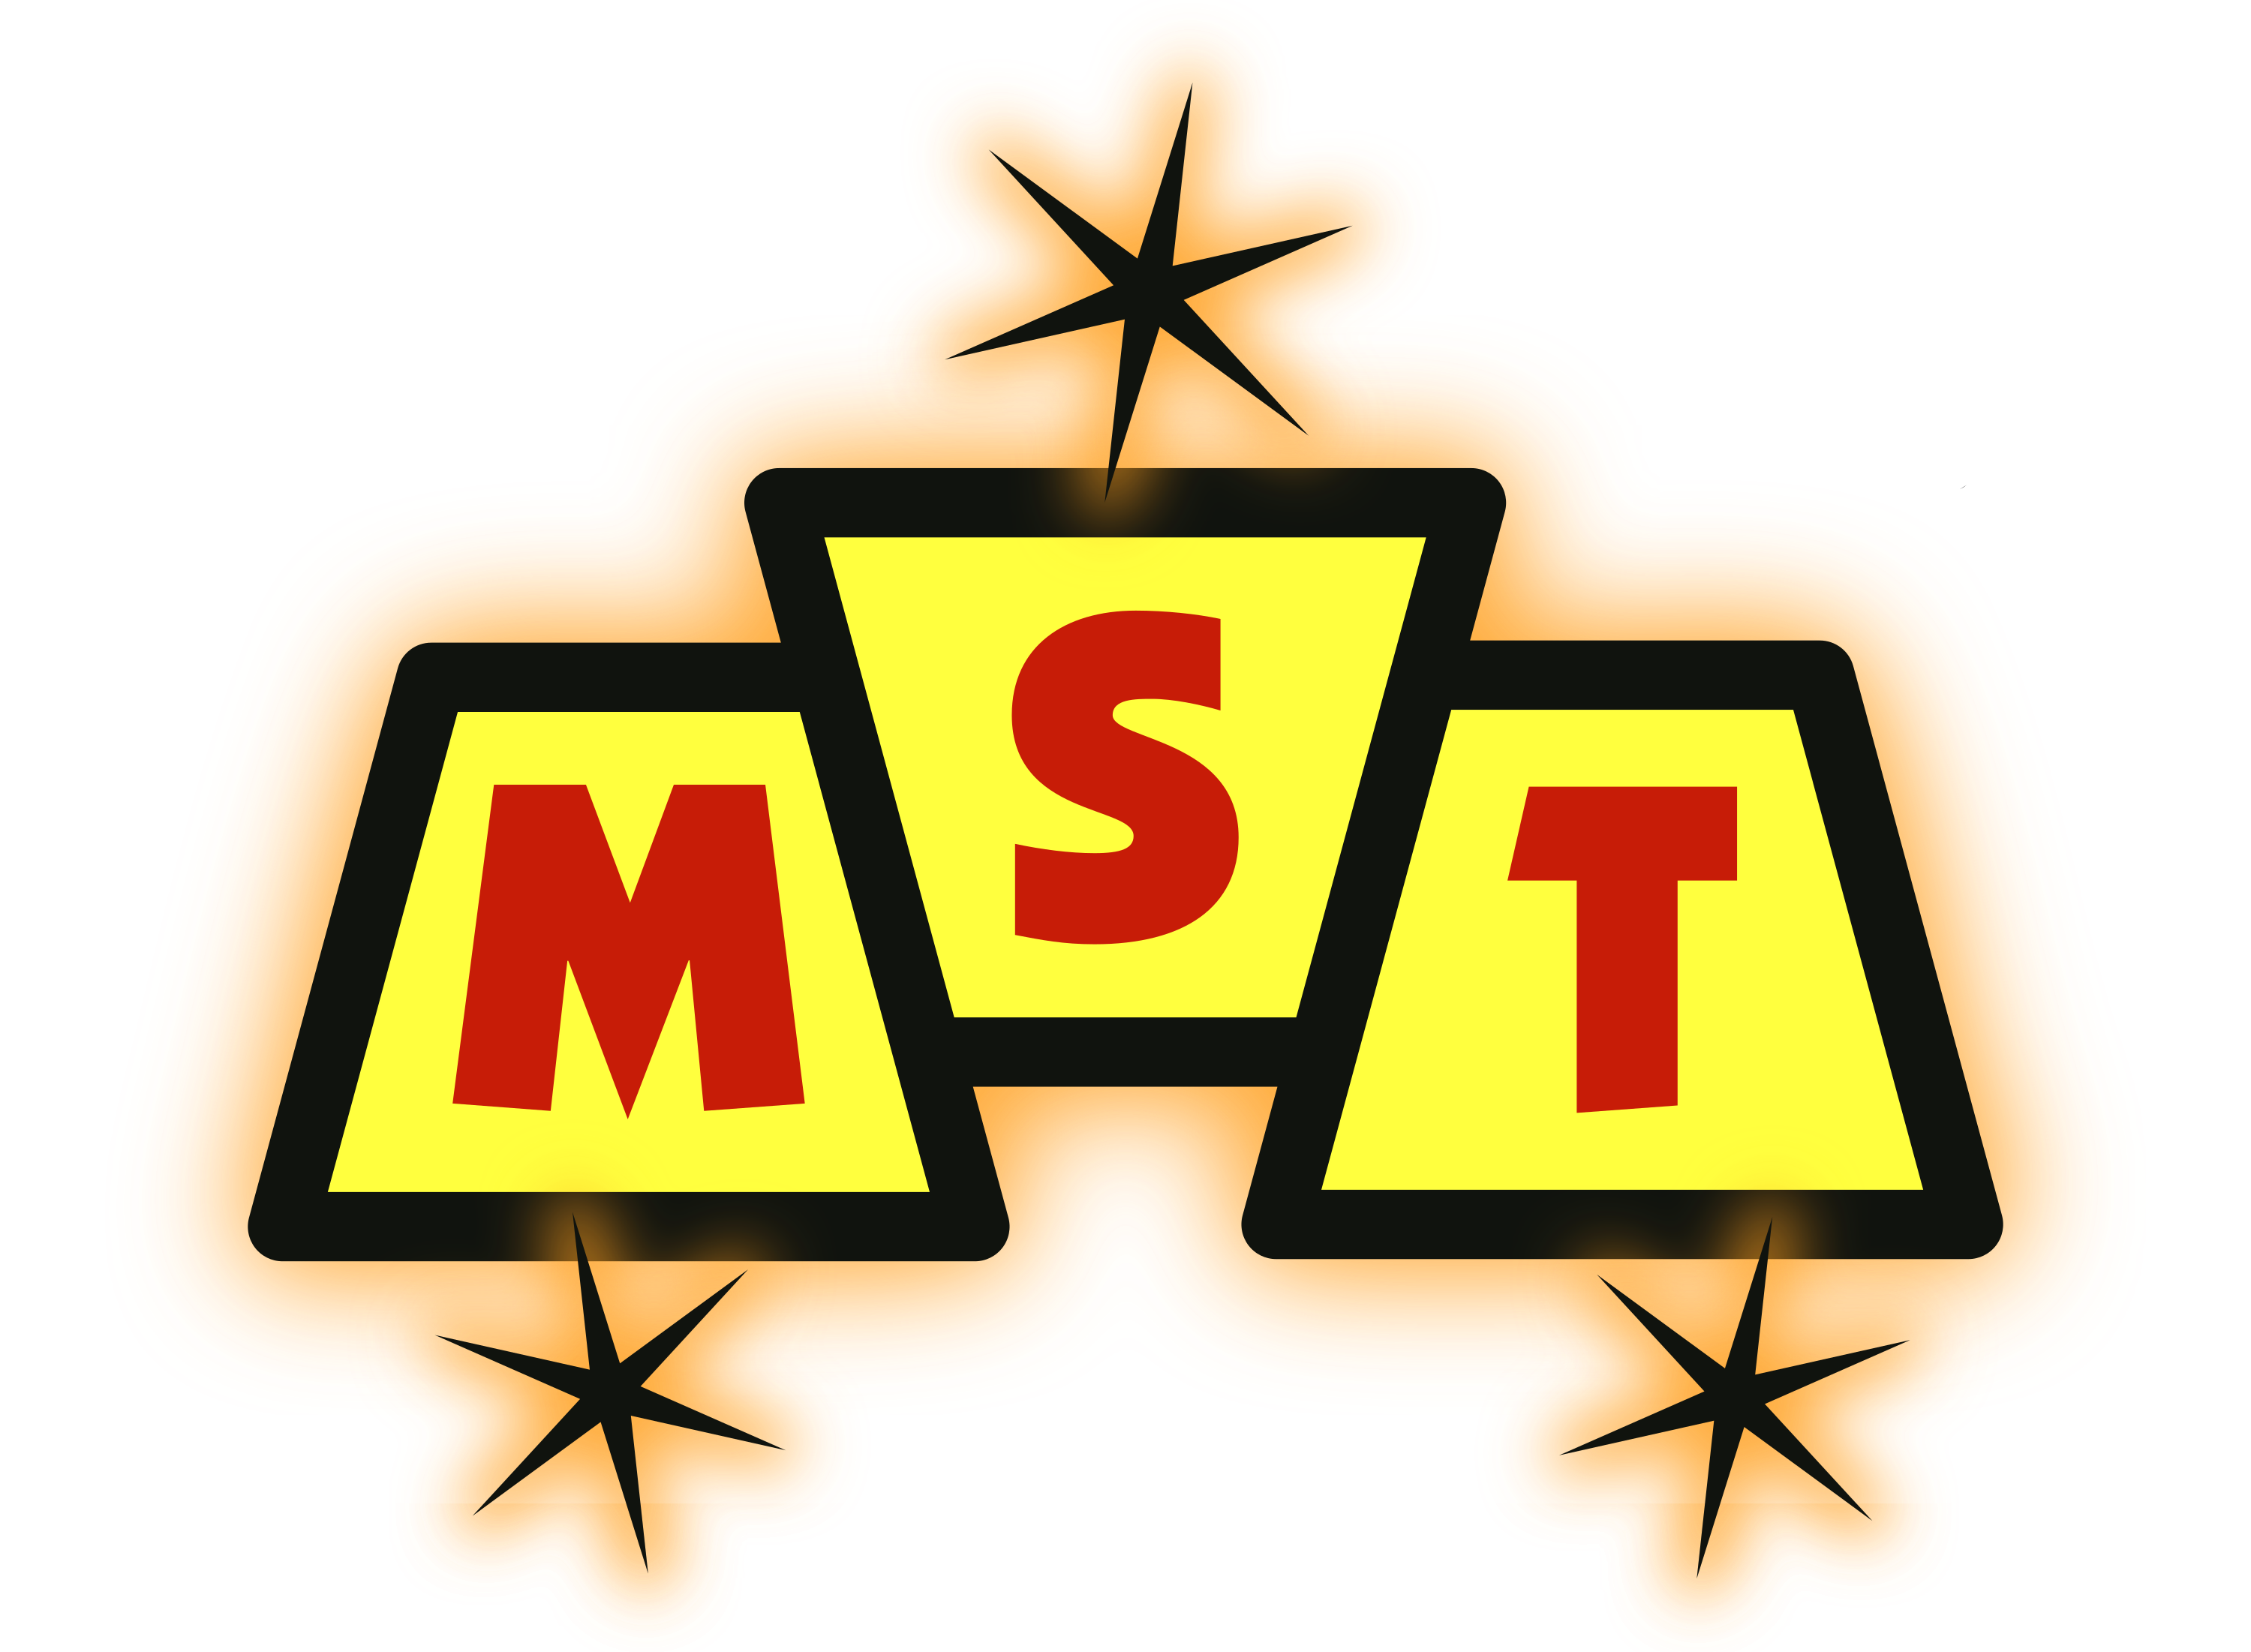 Join the MST Crew